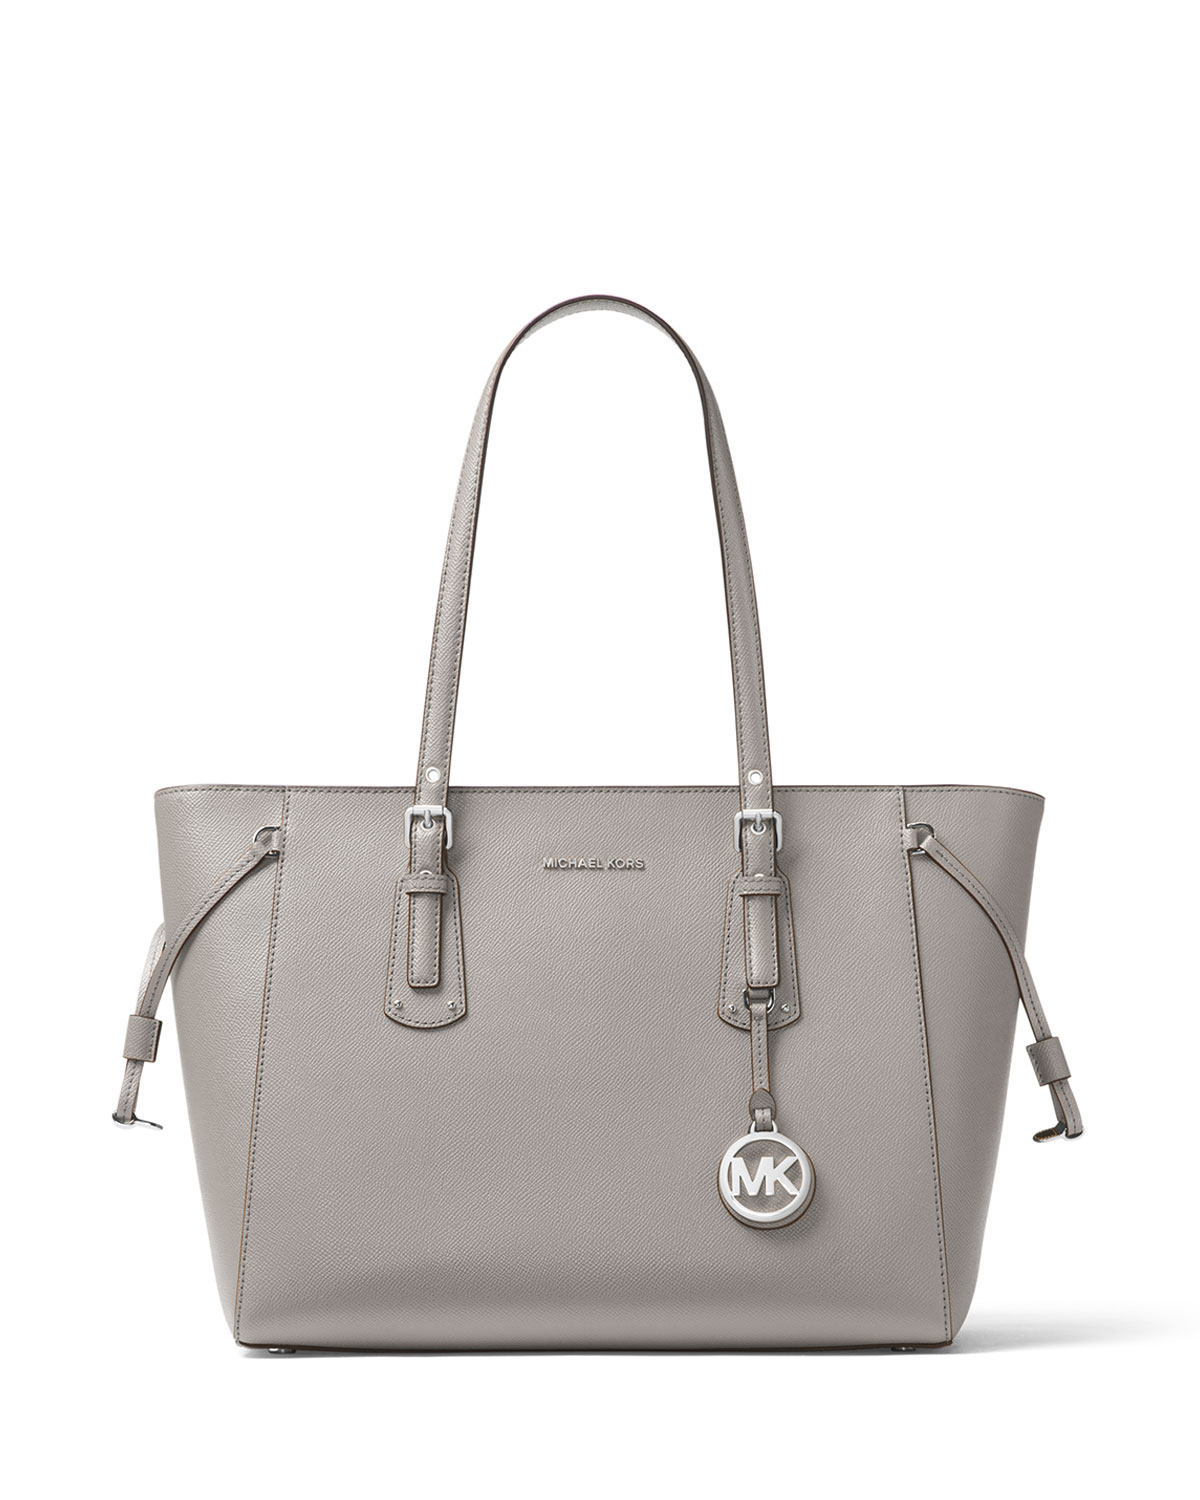 Voyager Medium Leather Shoulder Tote Bag